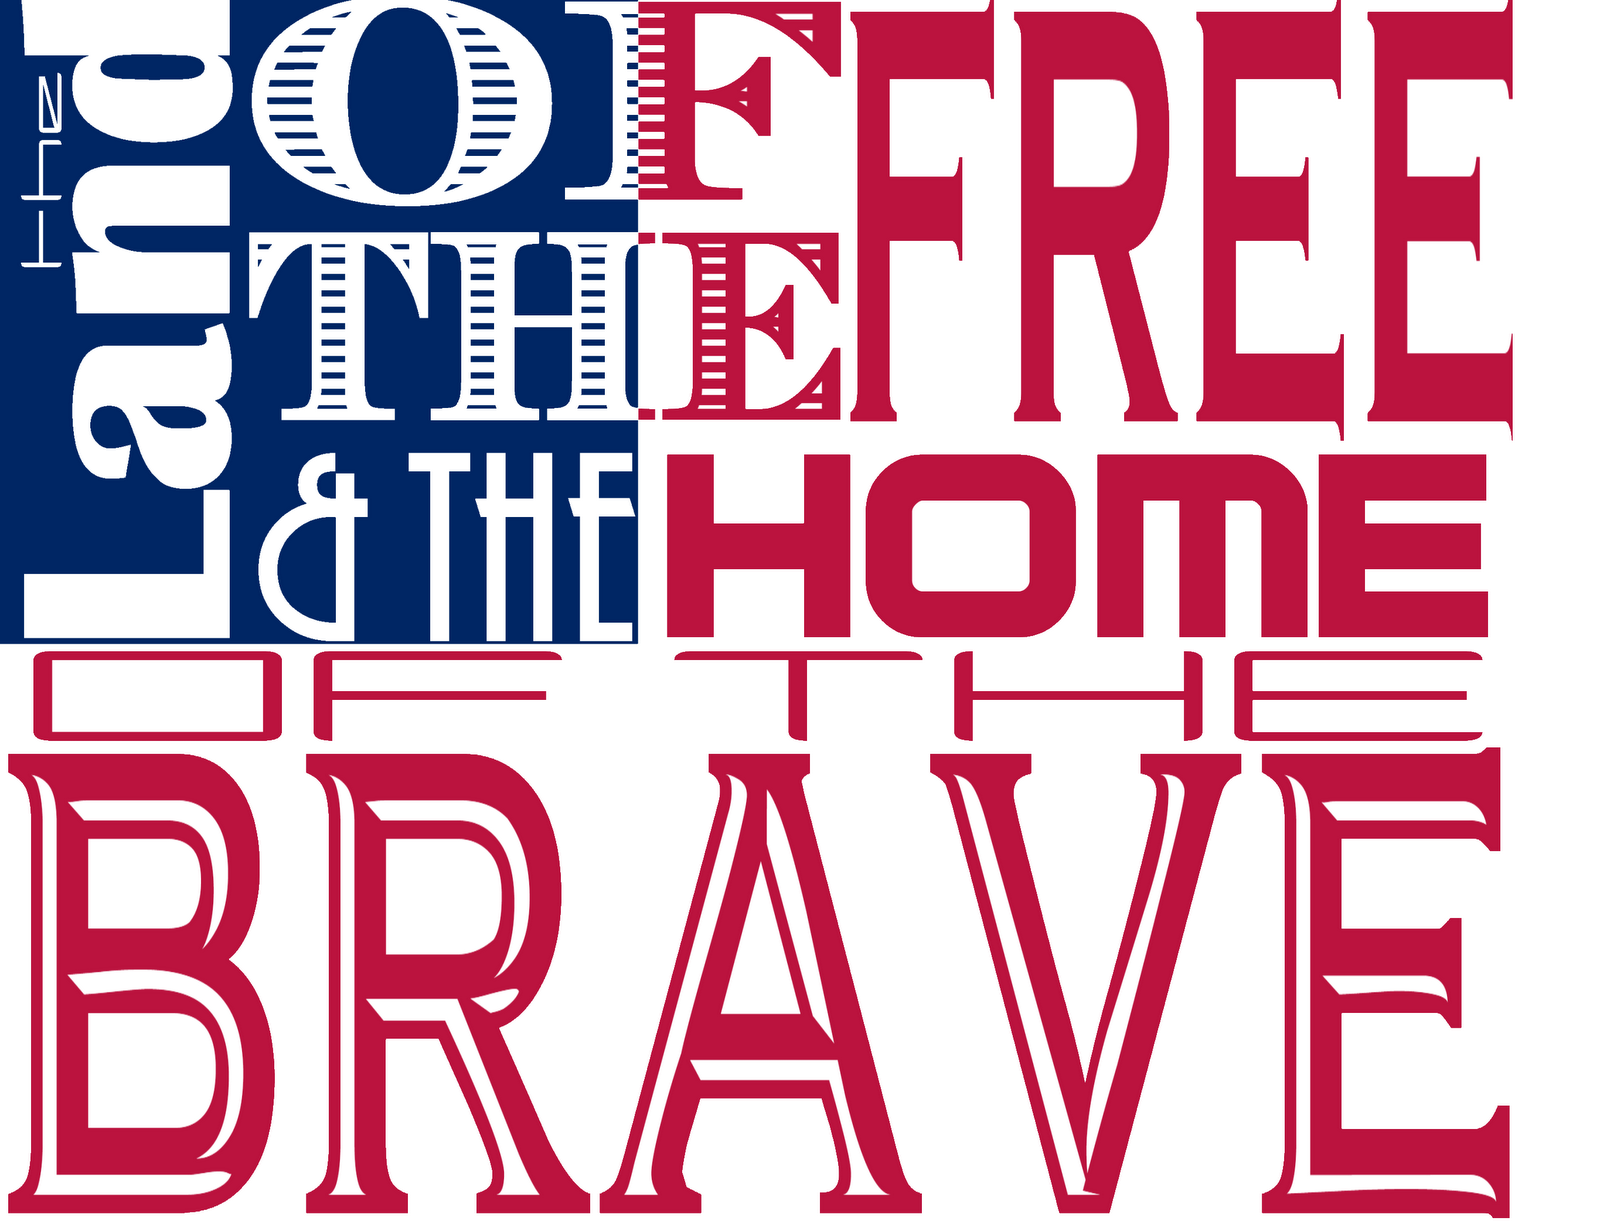 photograph regarding Printable Word Art identified as Mashed Potatoes and Crafts: Fourth of July printable phrase artwork